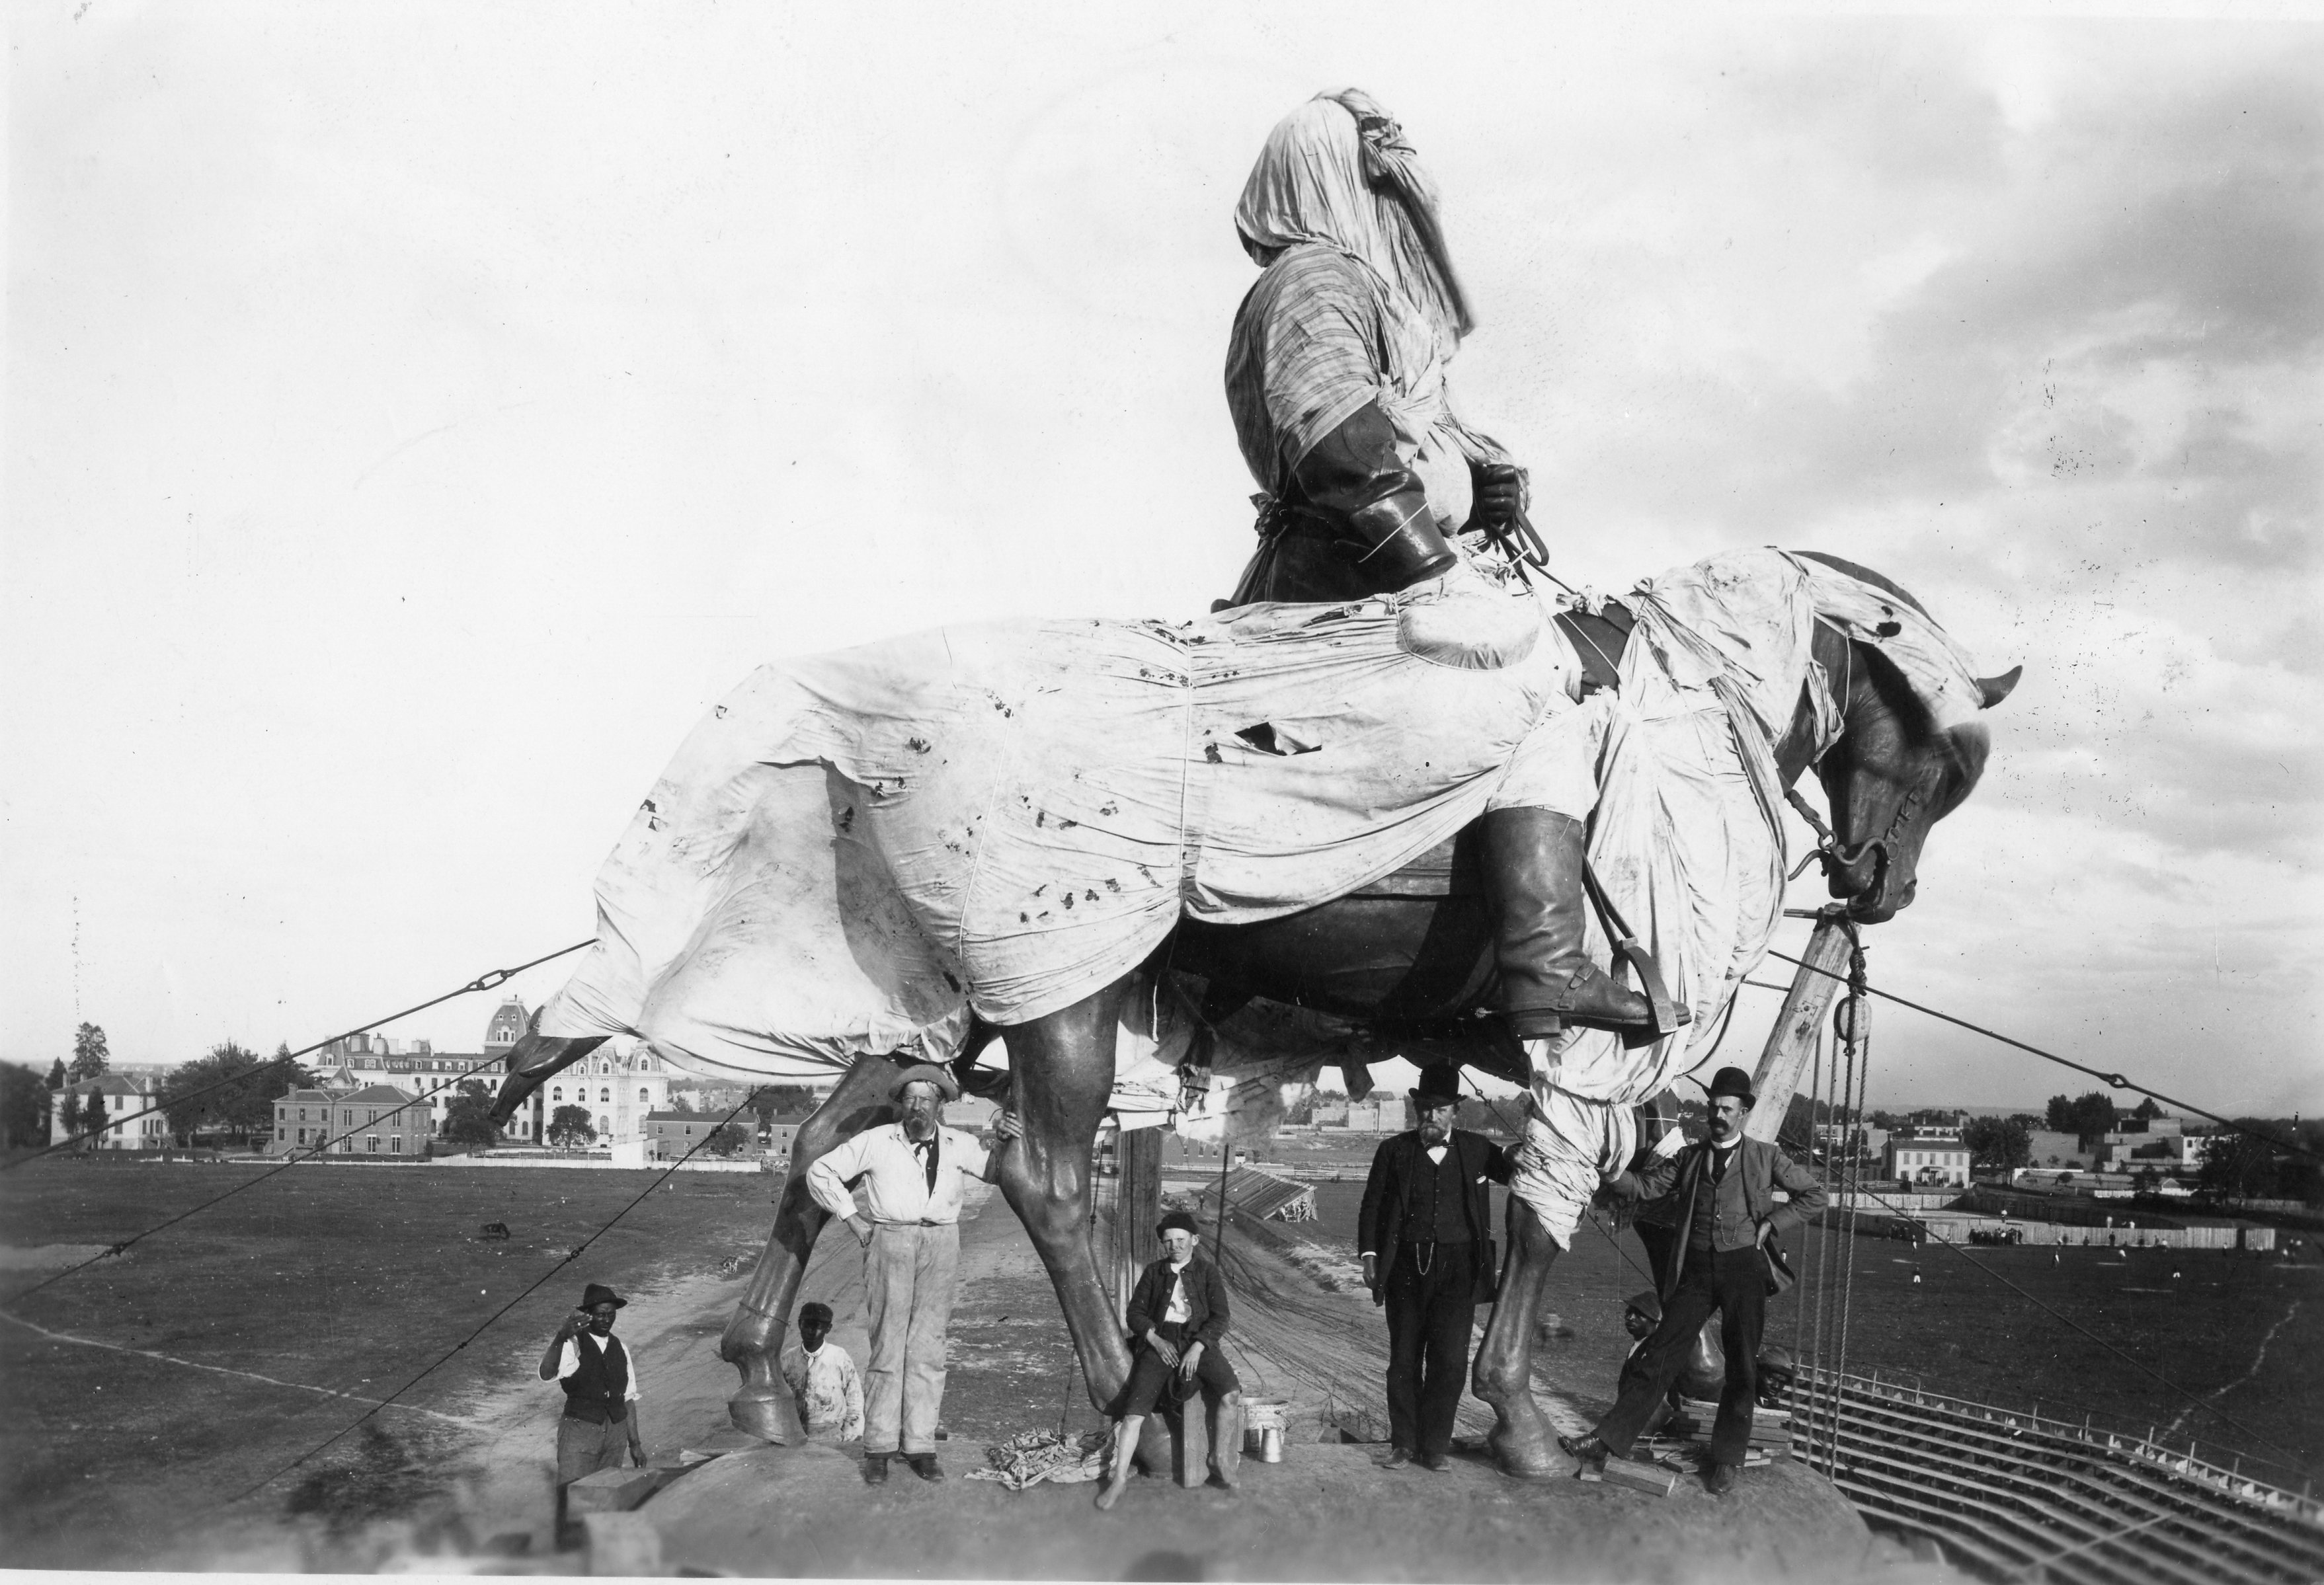 Workers on top of the Lee Monument, with the statue still wrapped and under construction prior to its unveiling